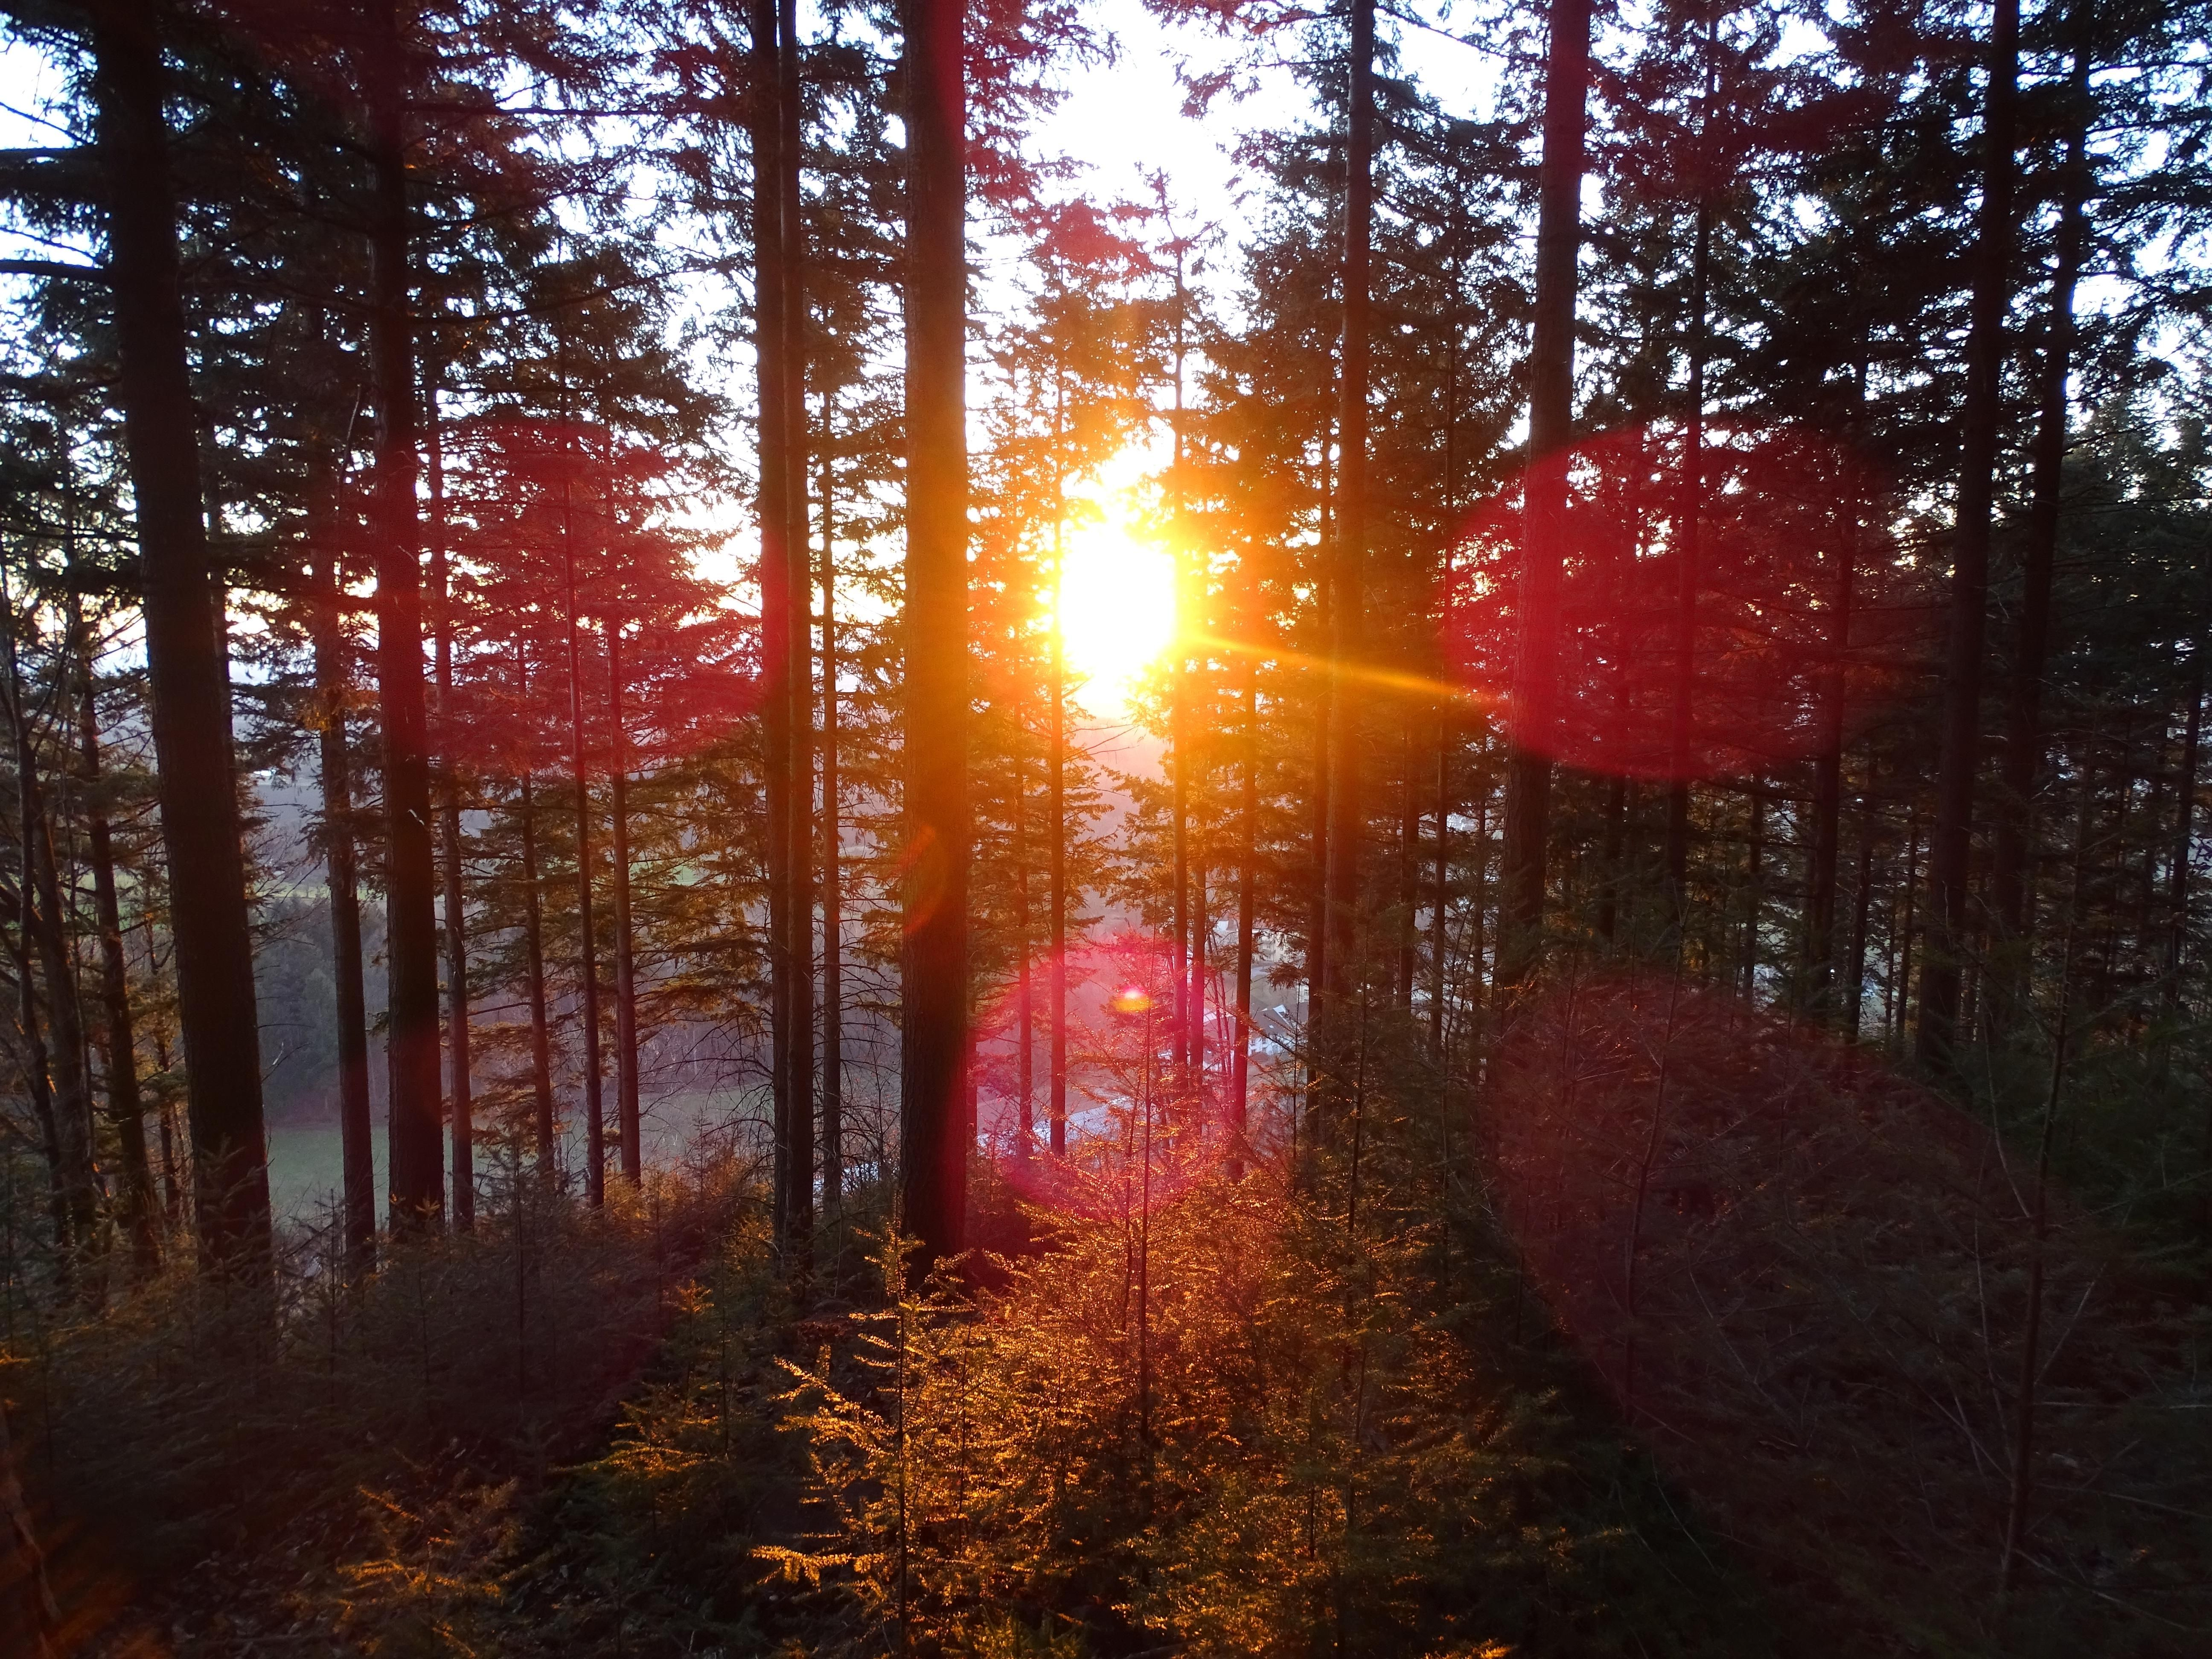 Sunset In Black Forest 5184x3888 Oc Unedited Http Bit Ly 2egwtz3 With Images Landscape Photos Outdoor Photography Landscape Photography